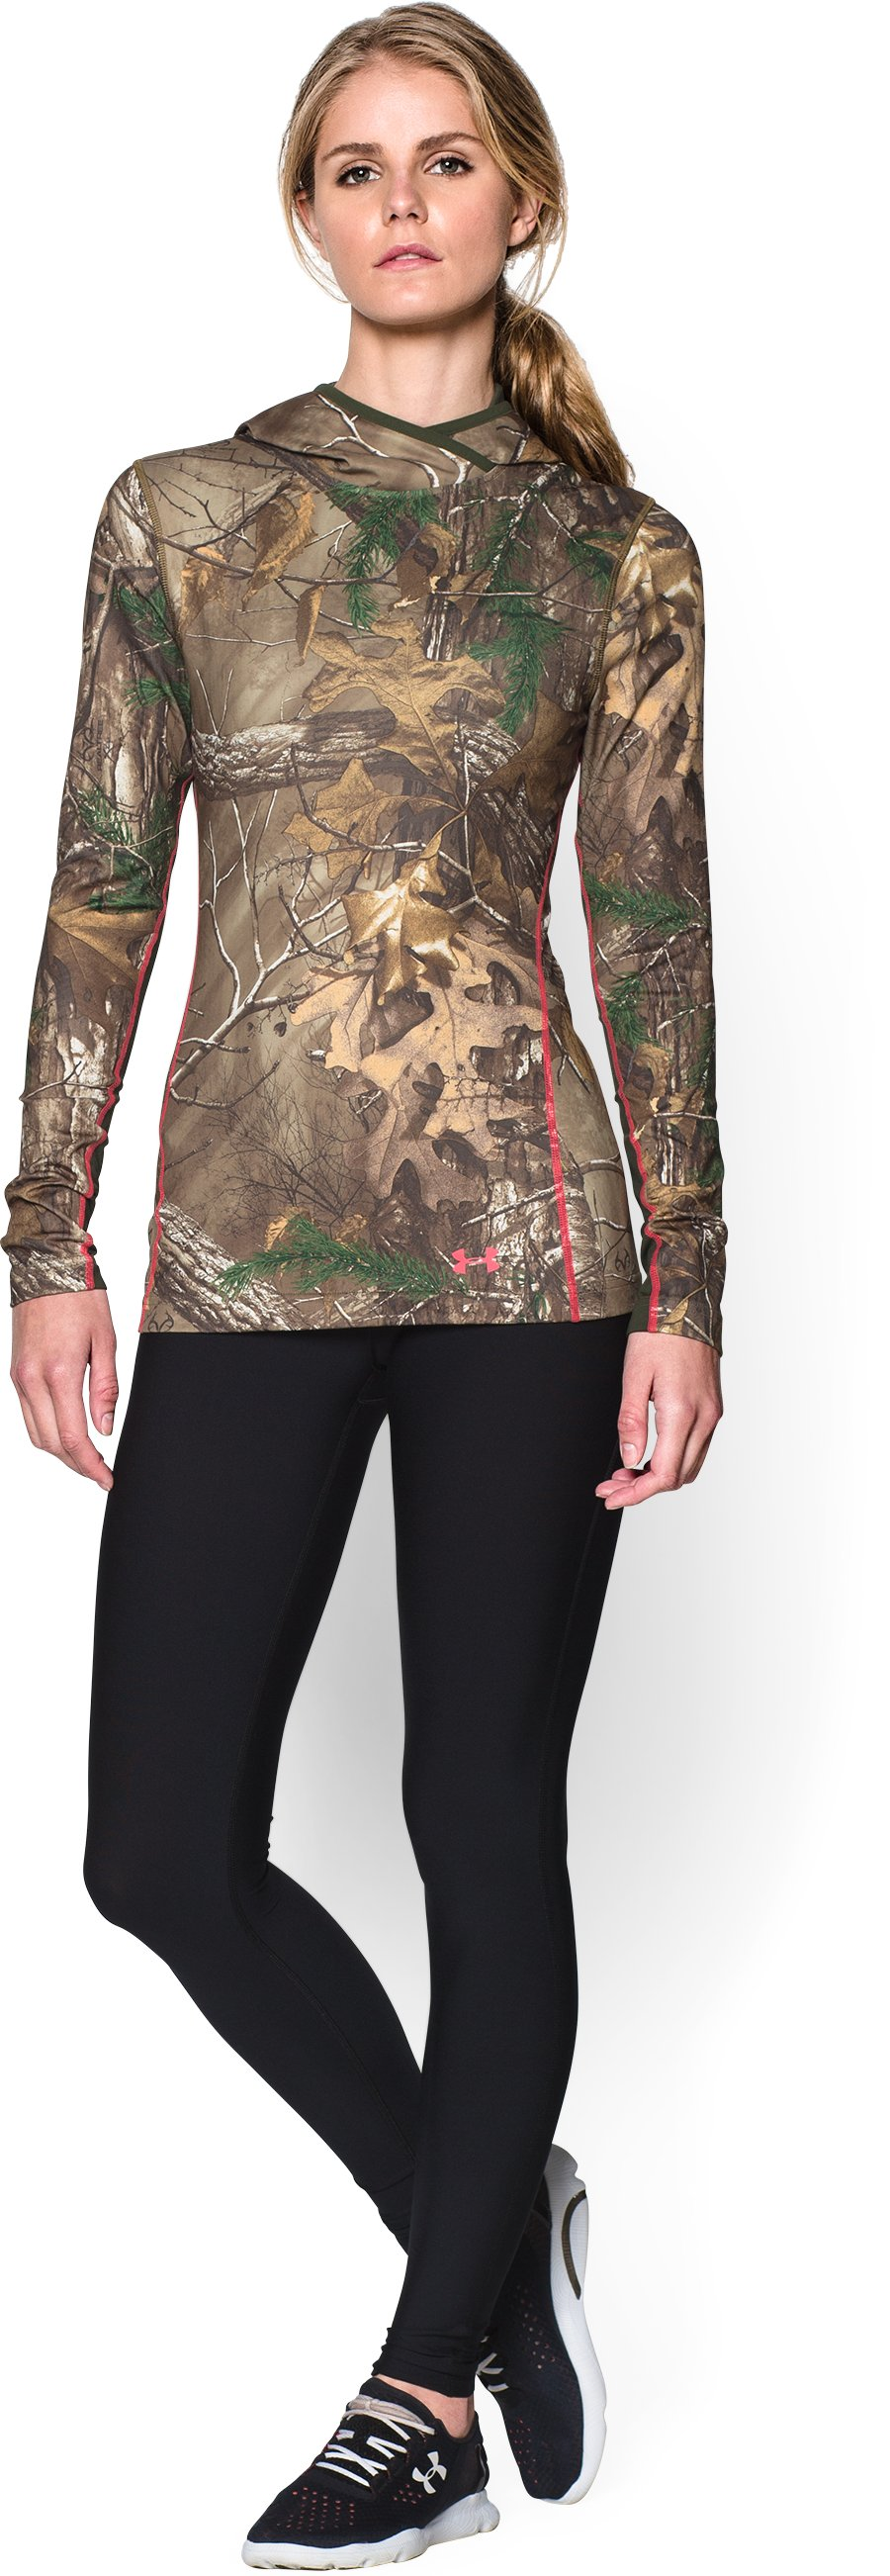 Women's ColdGear® Infrared EVO Hoodie, REALTREE AP-XTRA, Front